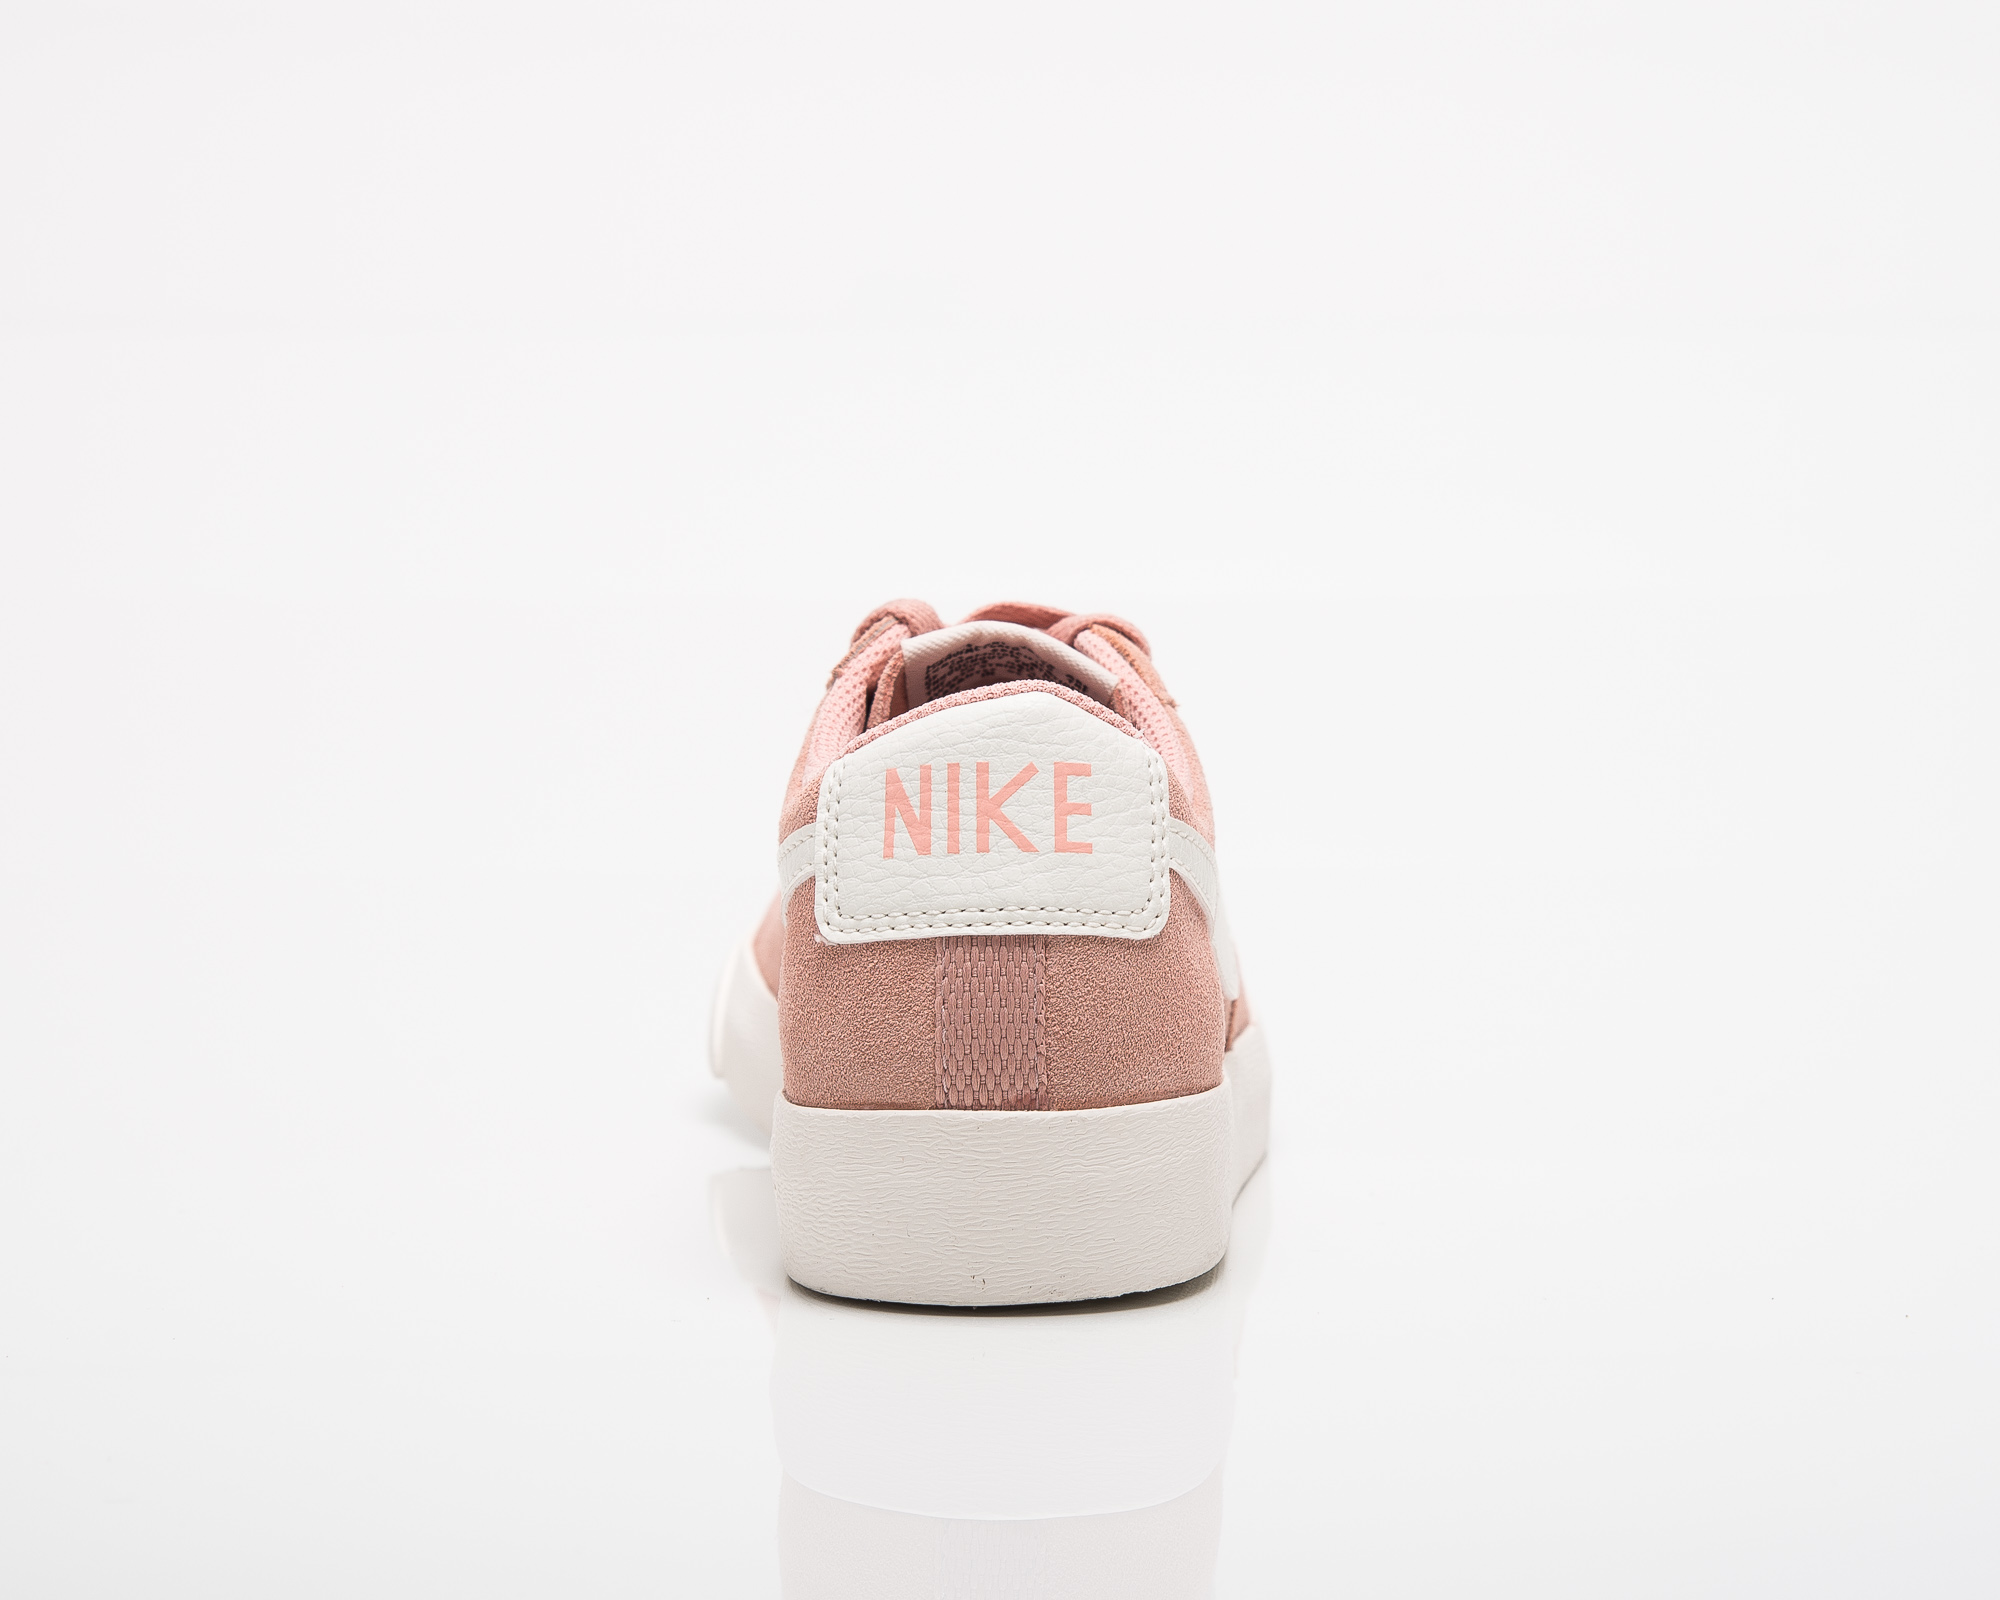 792287e97d00 Nike Wmns Blazer Low SD - Shoes Casual - Sporting goods